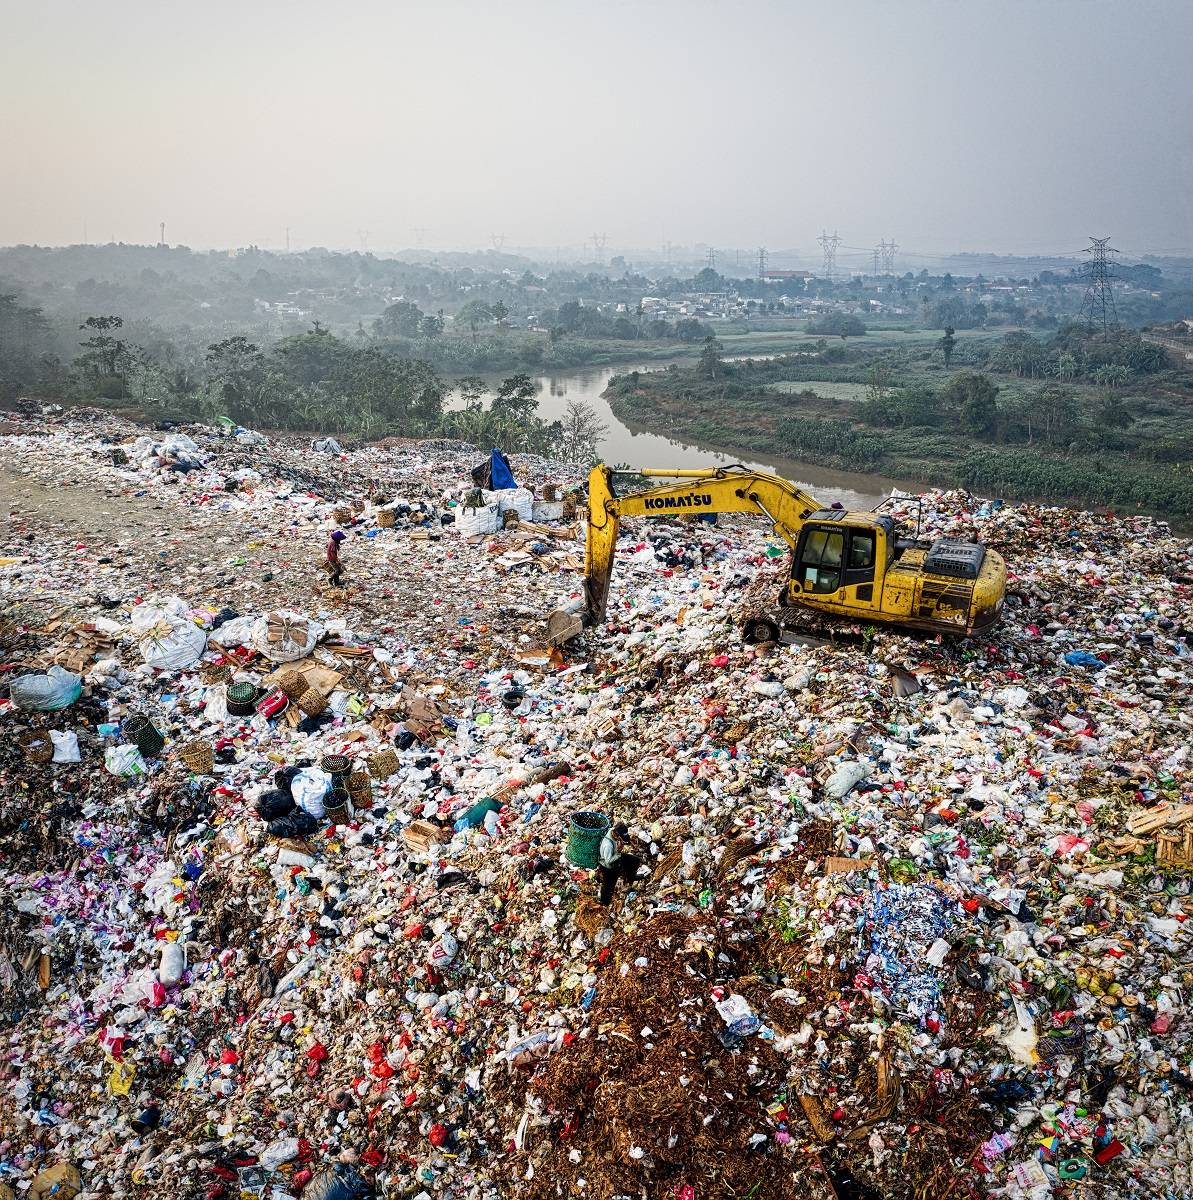 An excavator moving waste at a landfill site